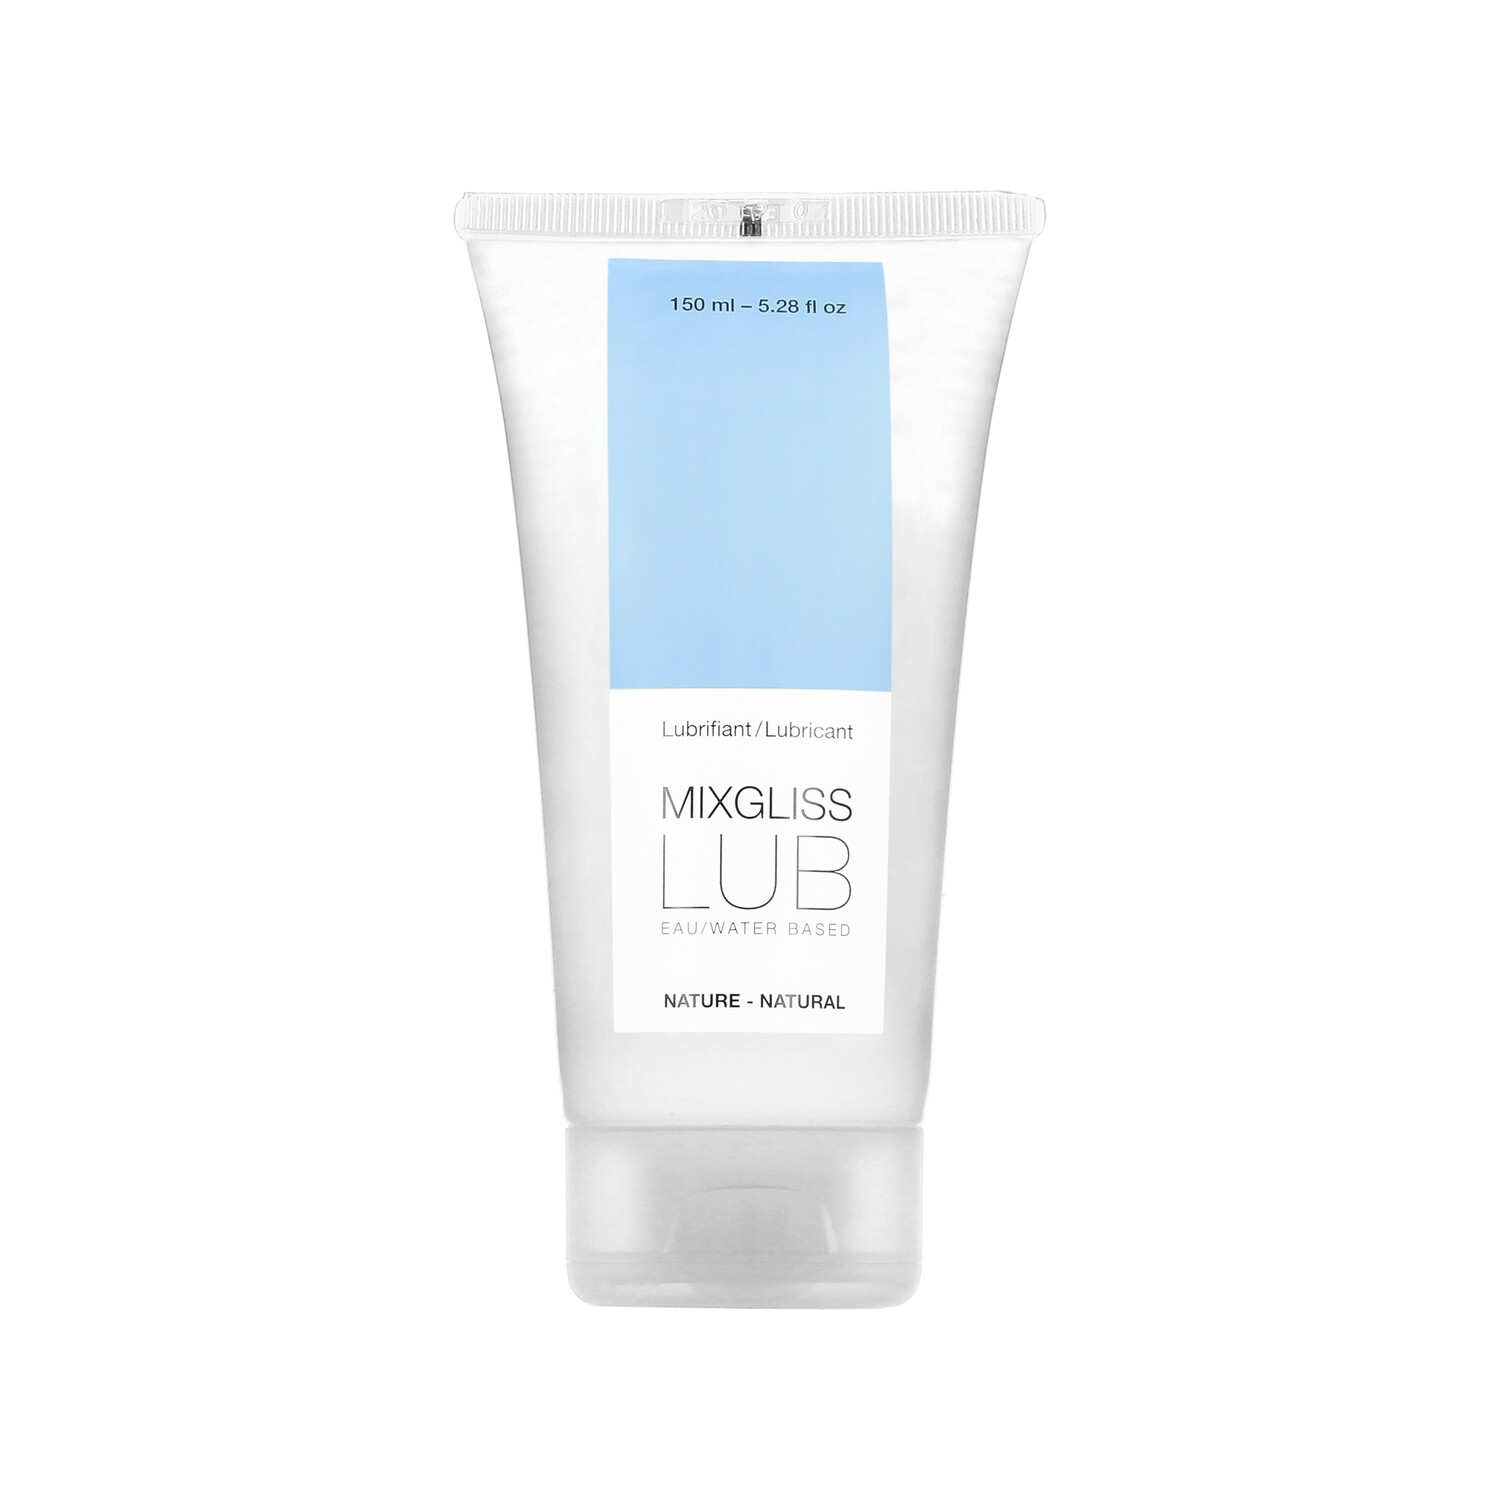 Mixgliss Lubrifiant gel Intime nature A base eau 150 ml